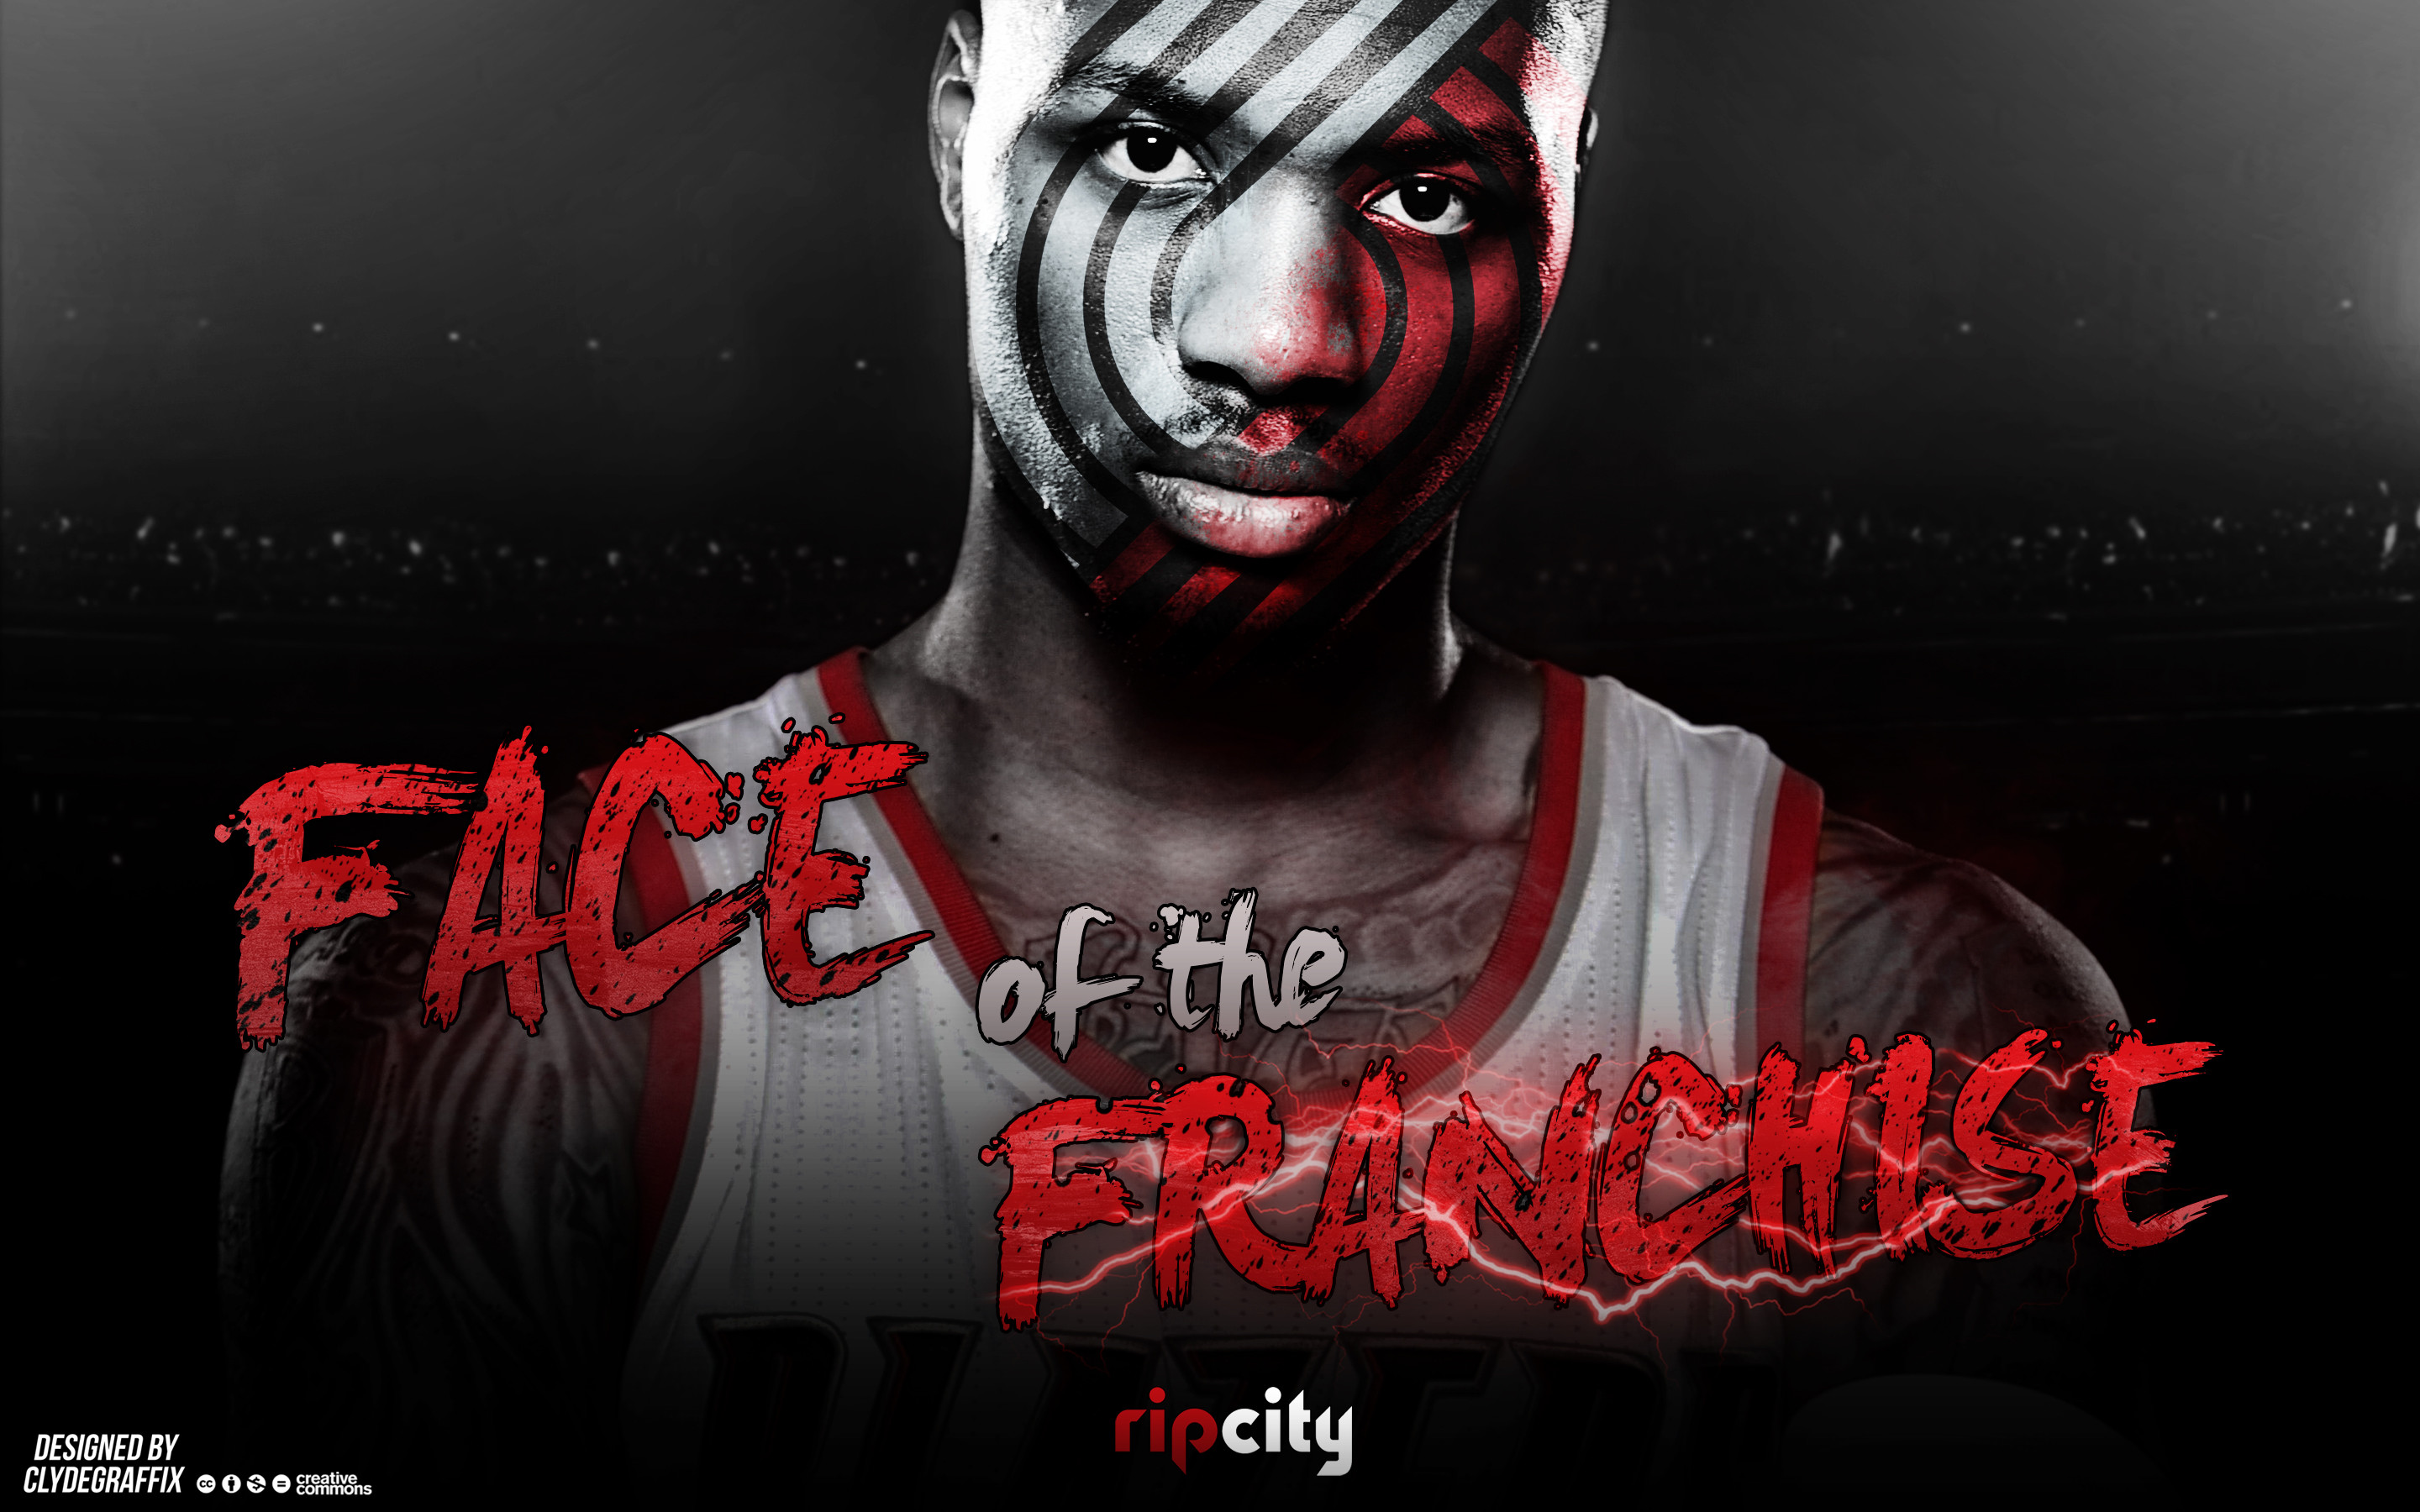 Res: 2880x1800, ... Damian Lillard | Face of the Franchise | Wallpaper by ClydeGraffix